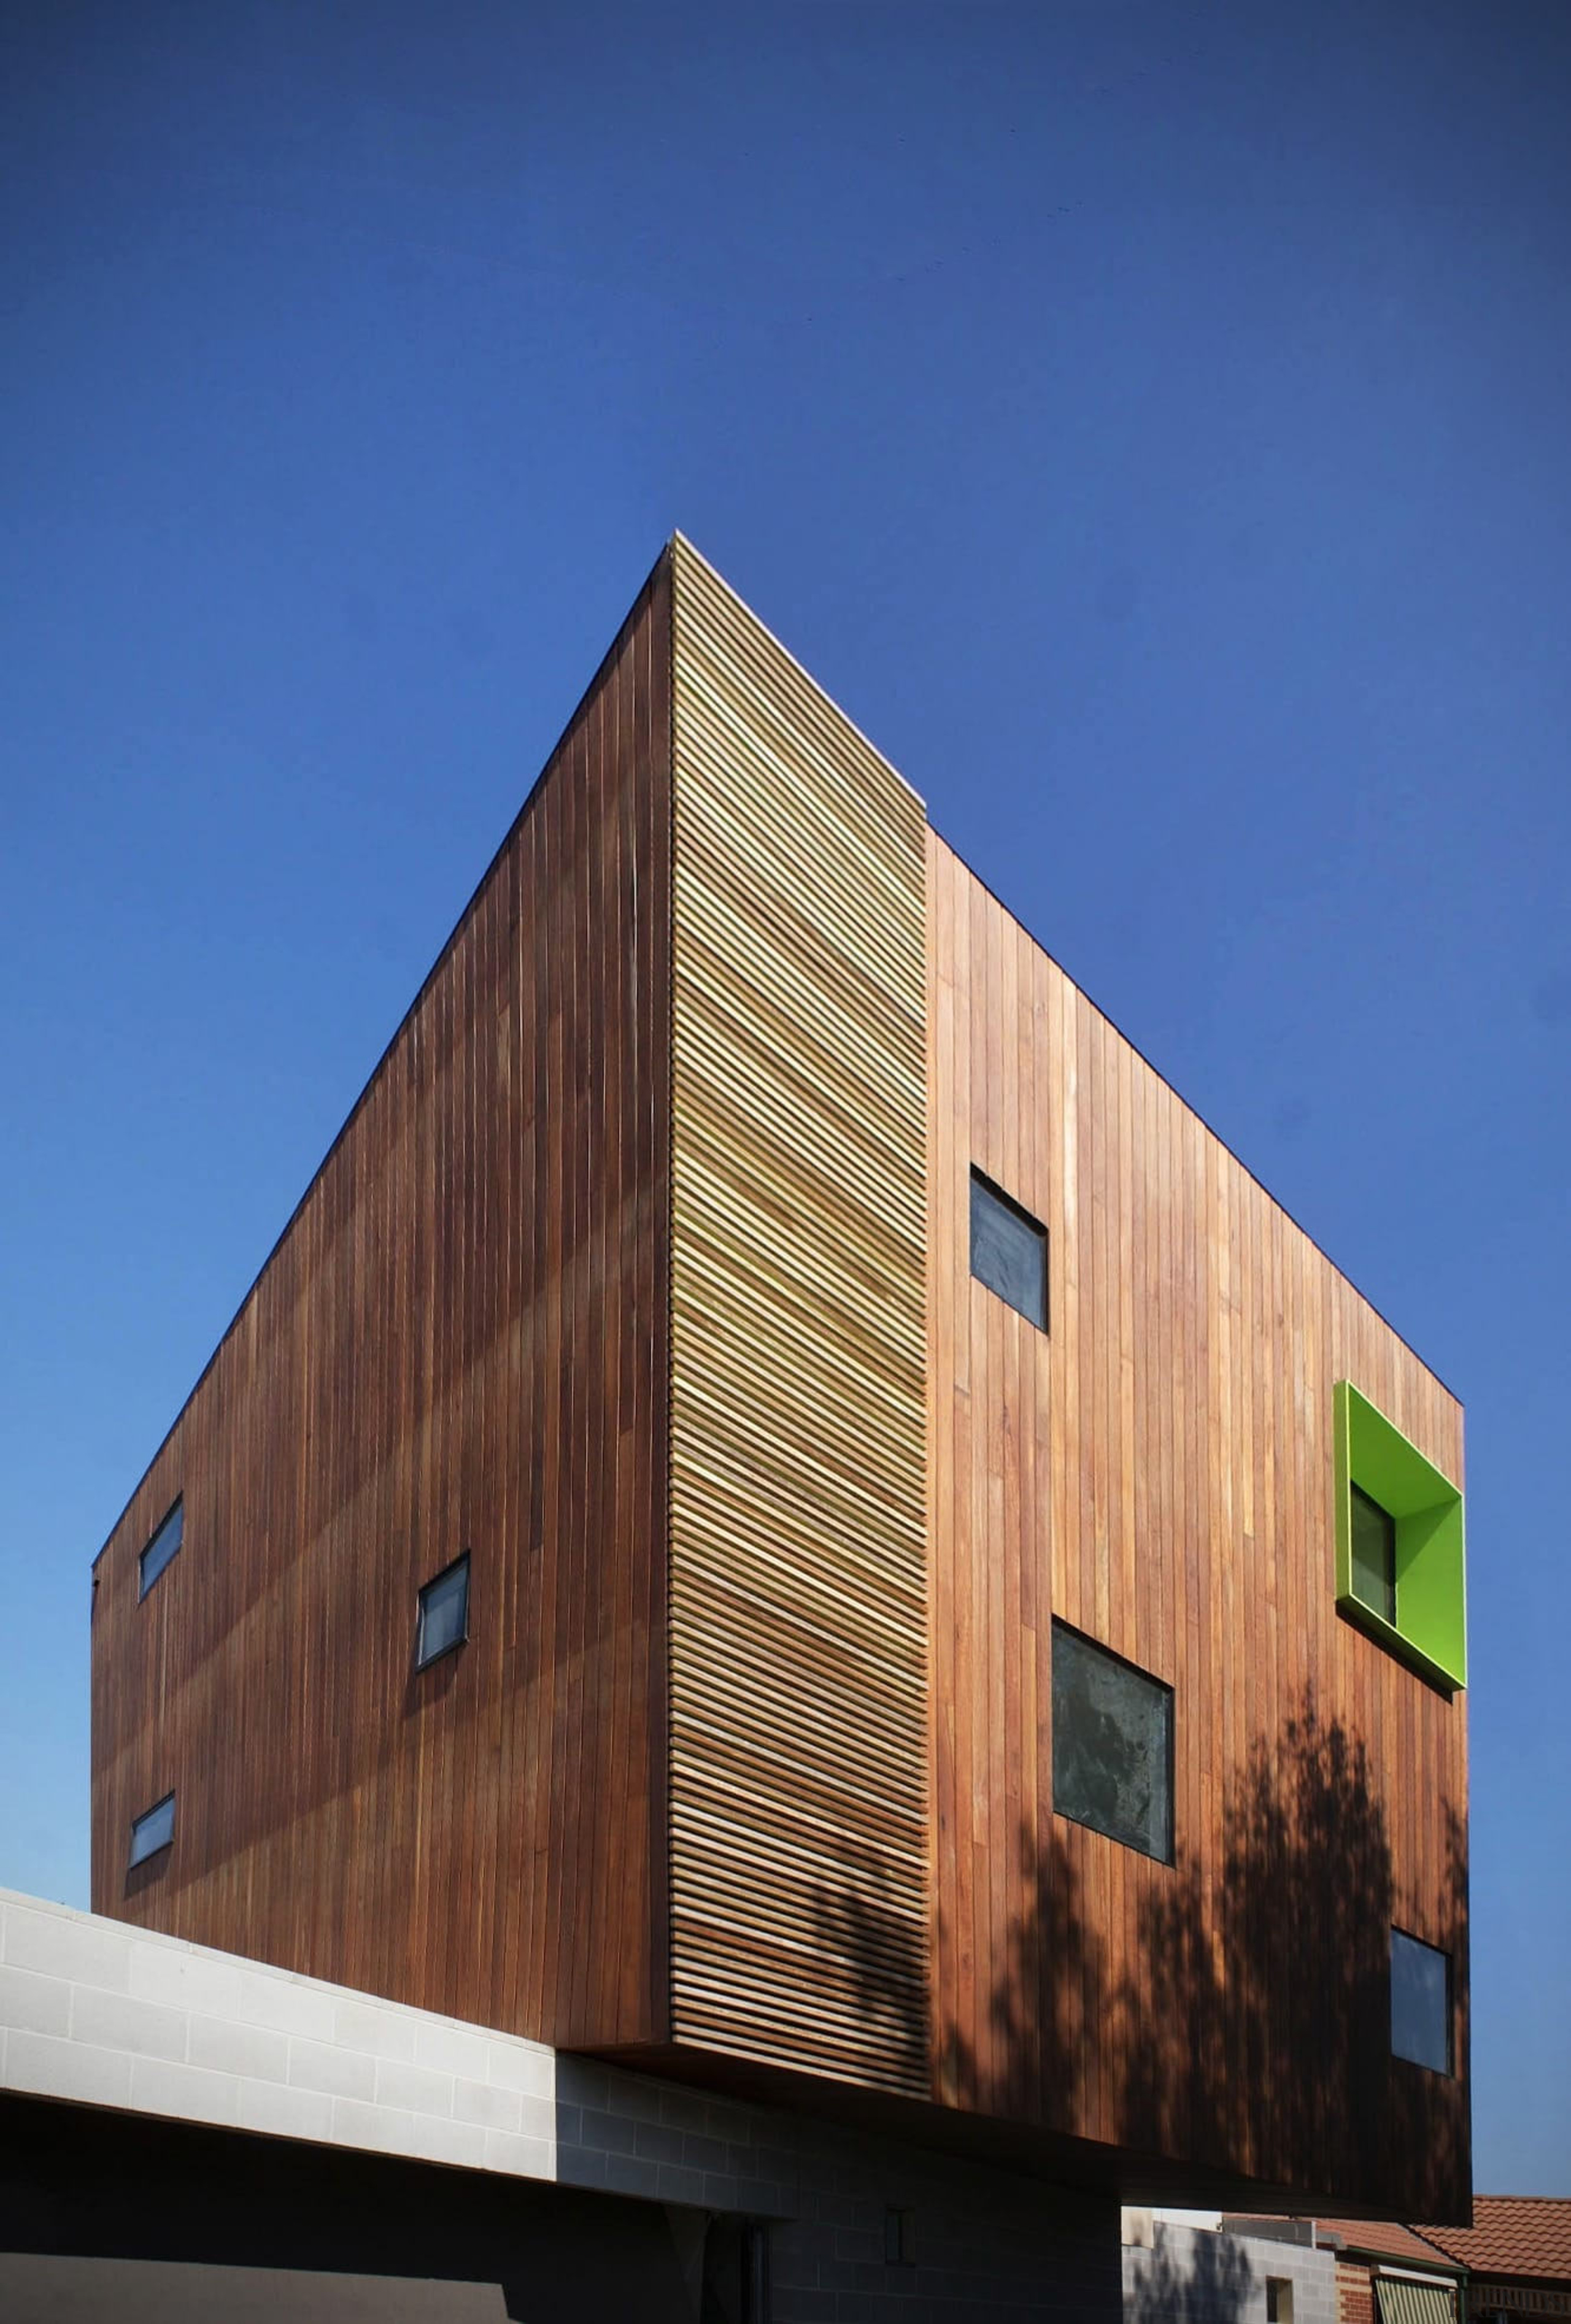 This green inset breaks up the wood - architecture, building, daylighting, facade, house, siding, sky, wall, wood, blue